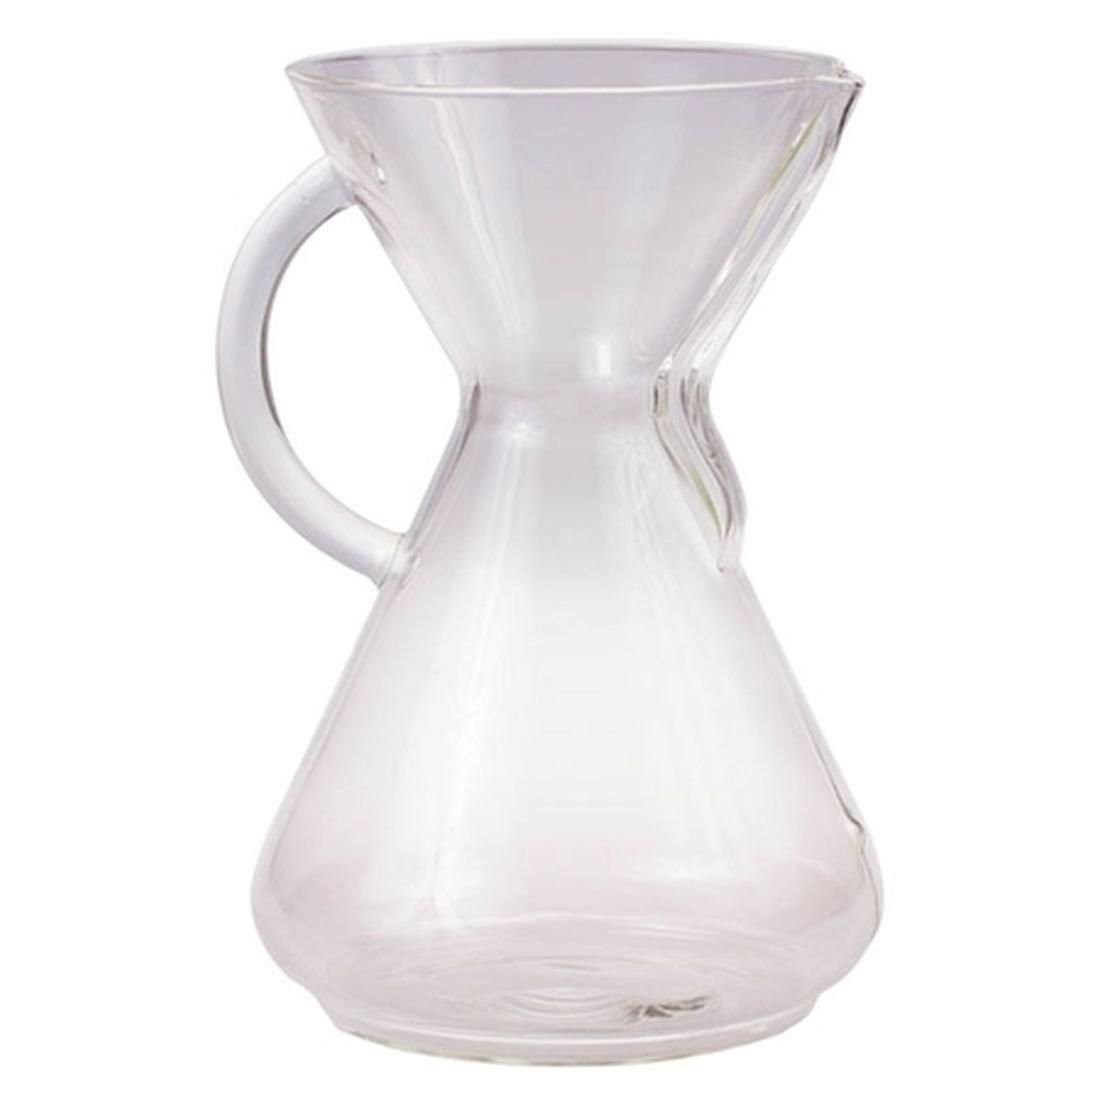 Chemex 10-Cup Glass Coffee Maker with Handle